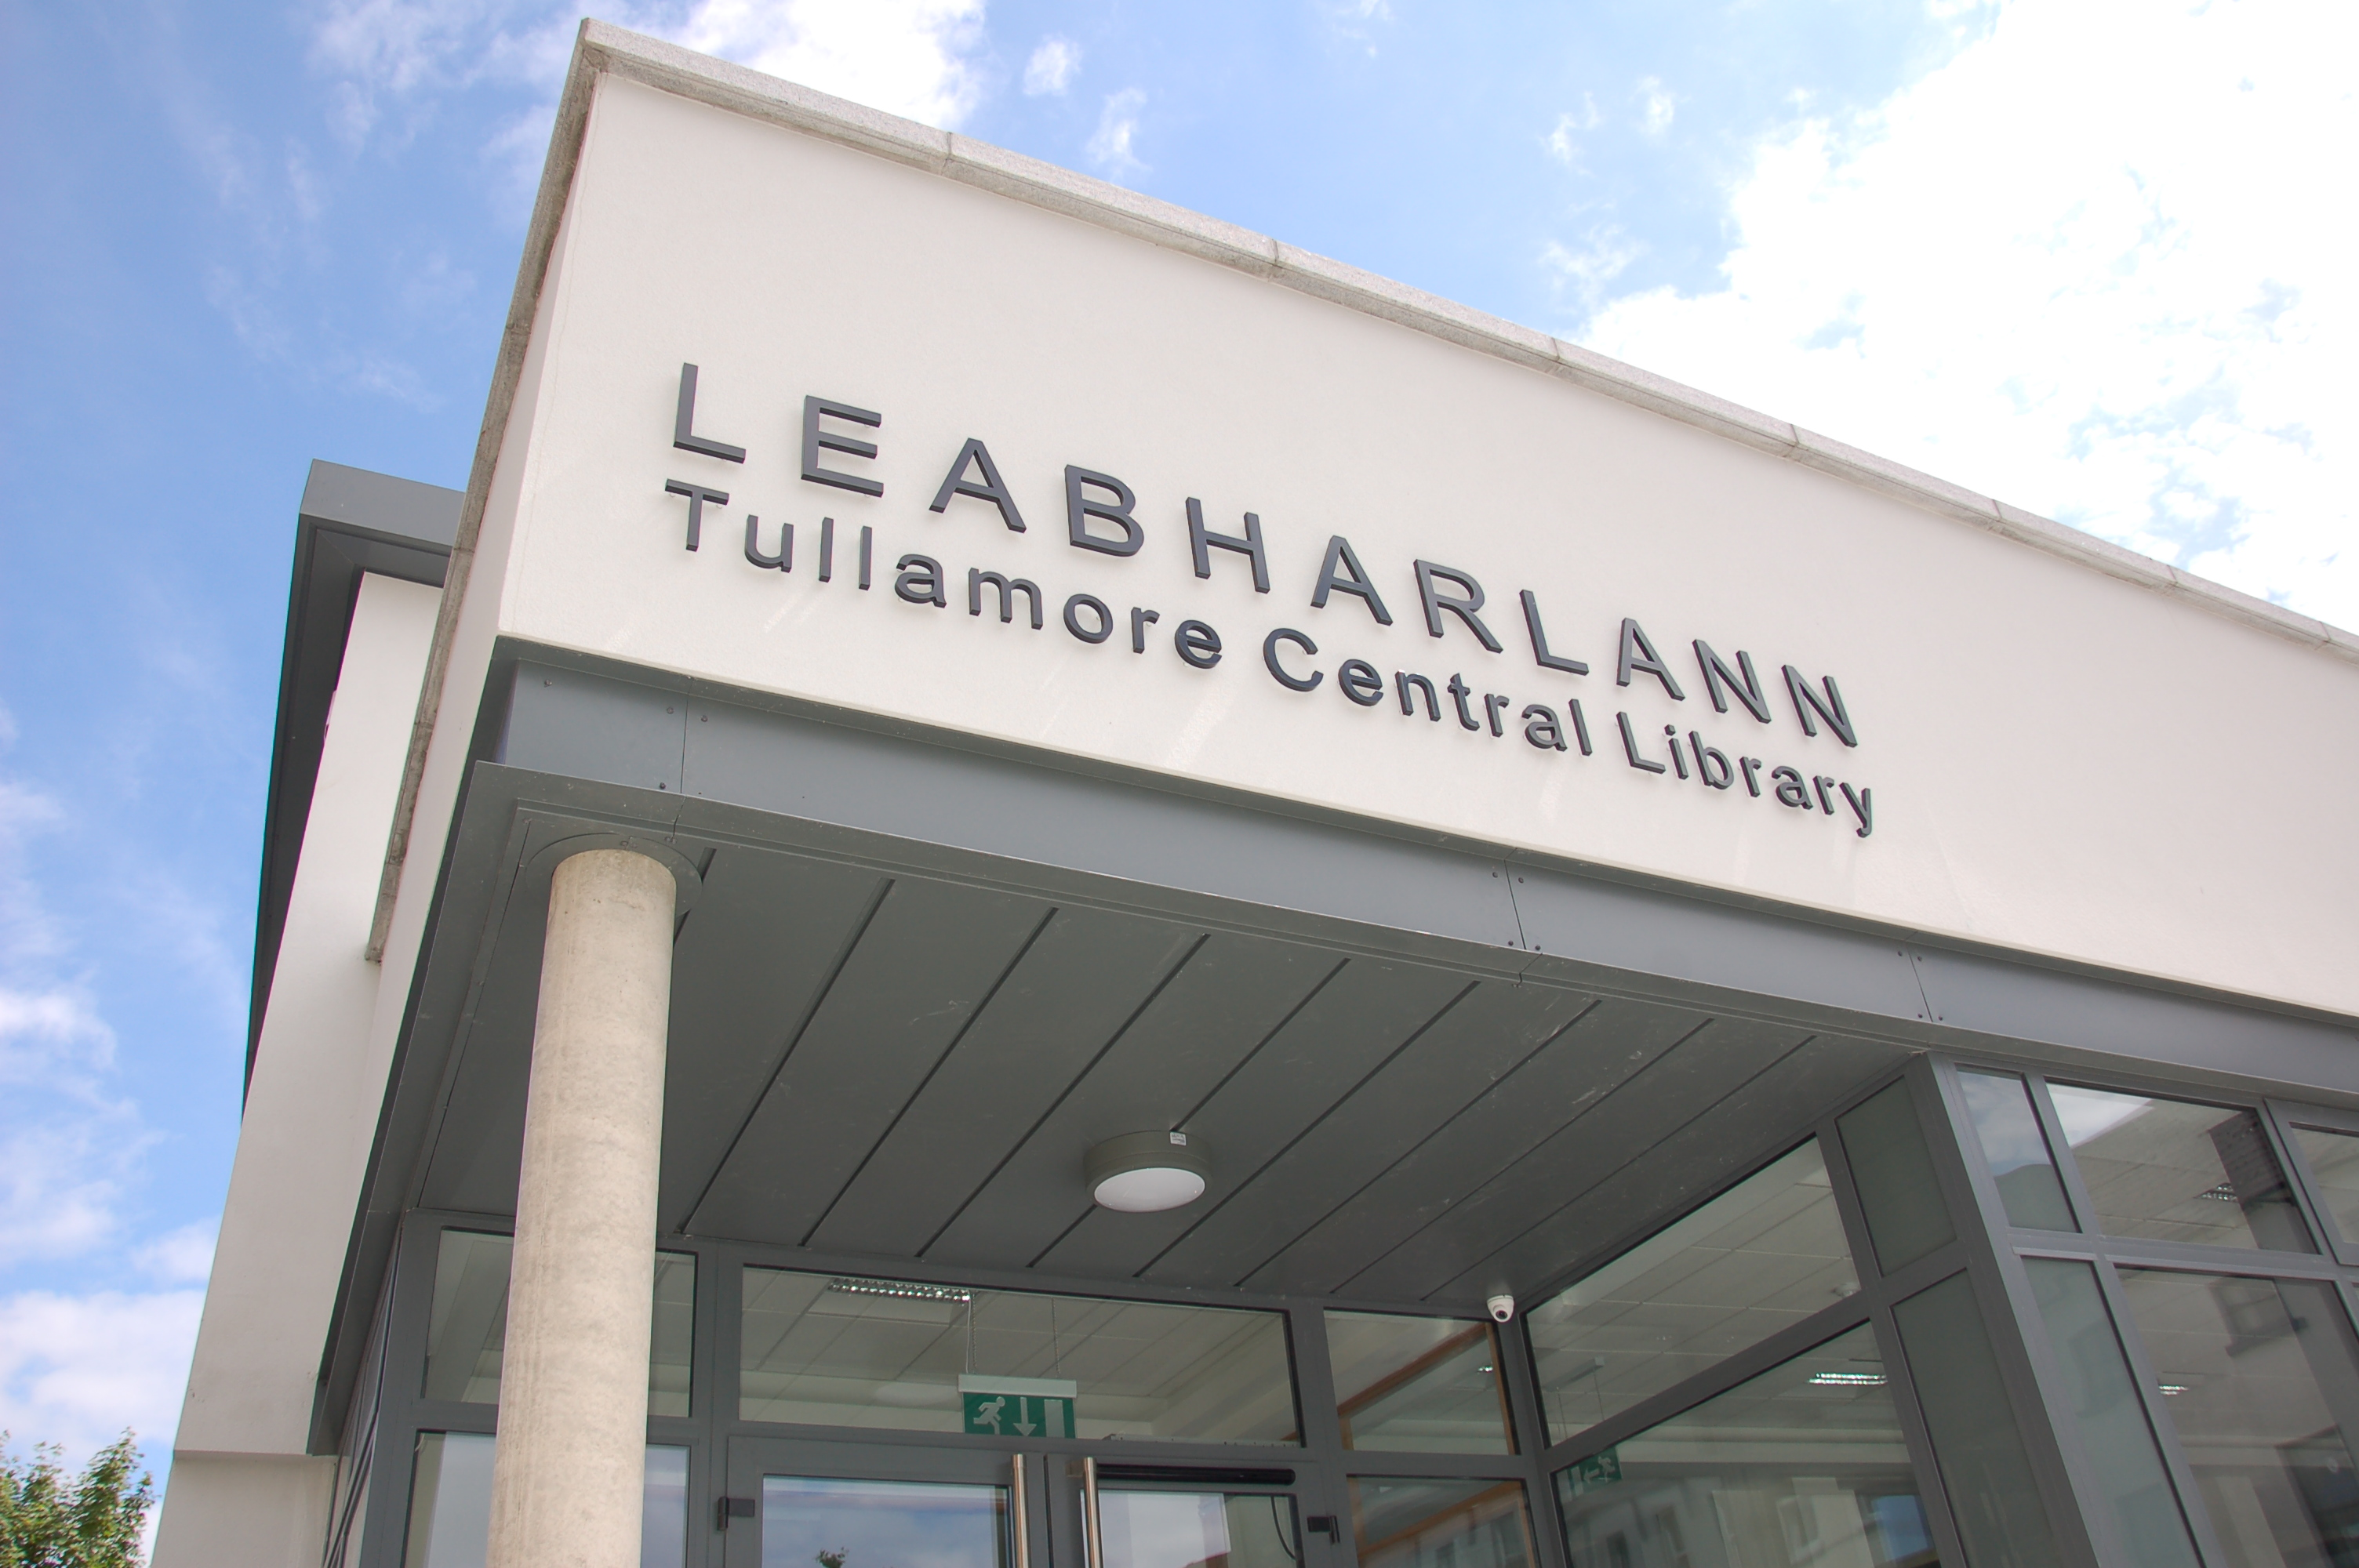 photograph of the front of Tullamore Central Library